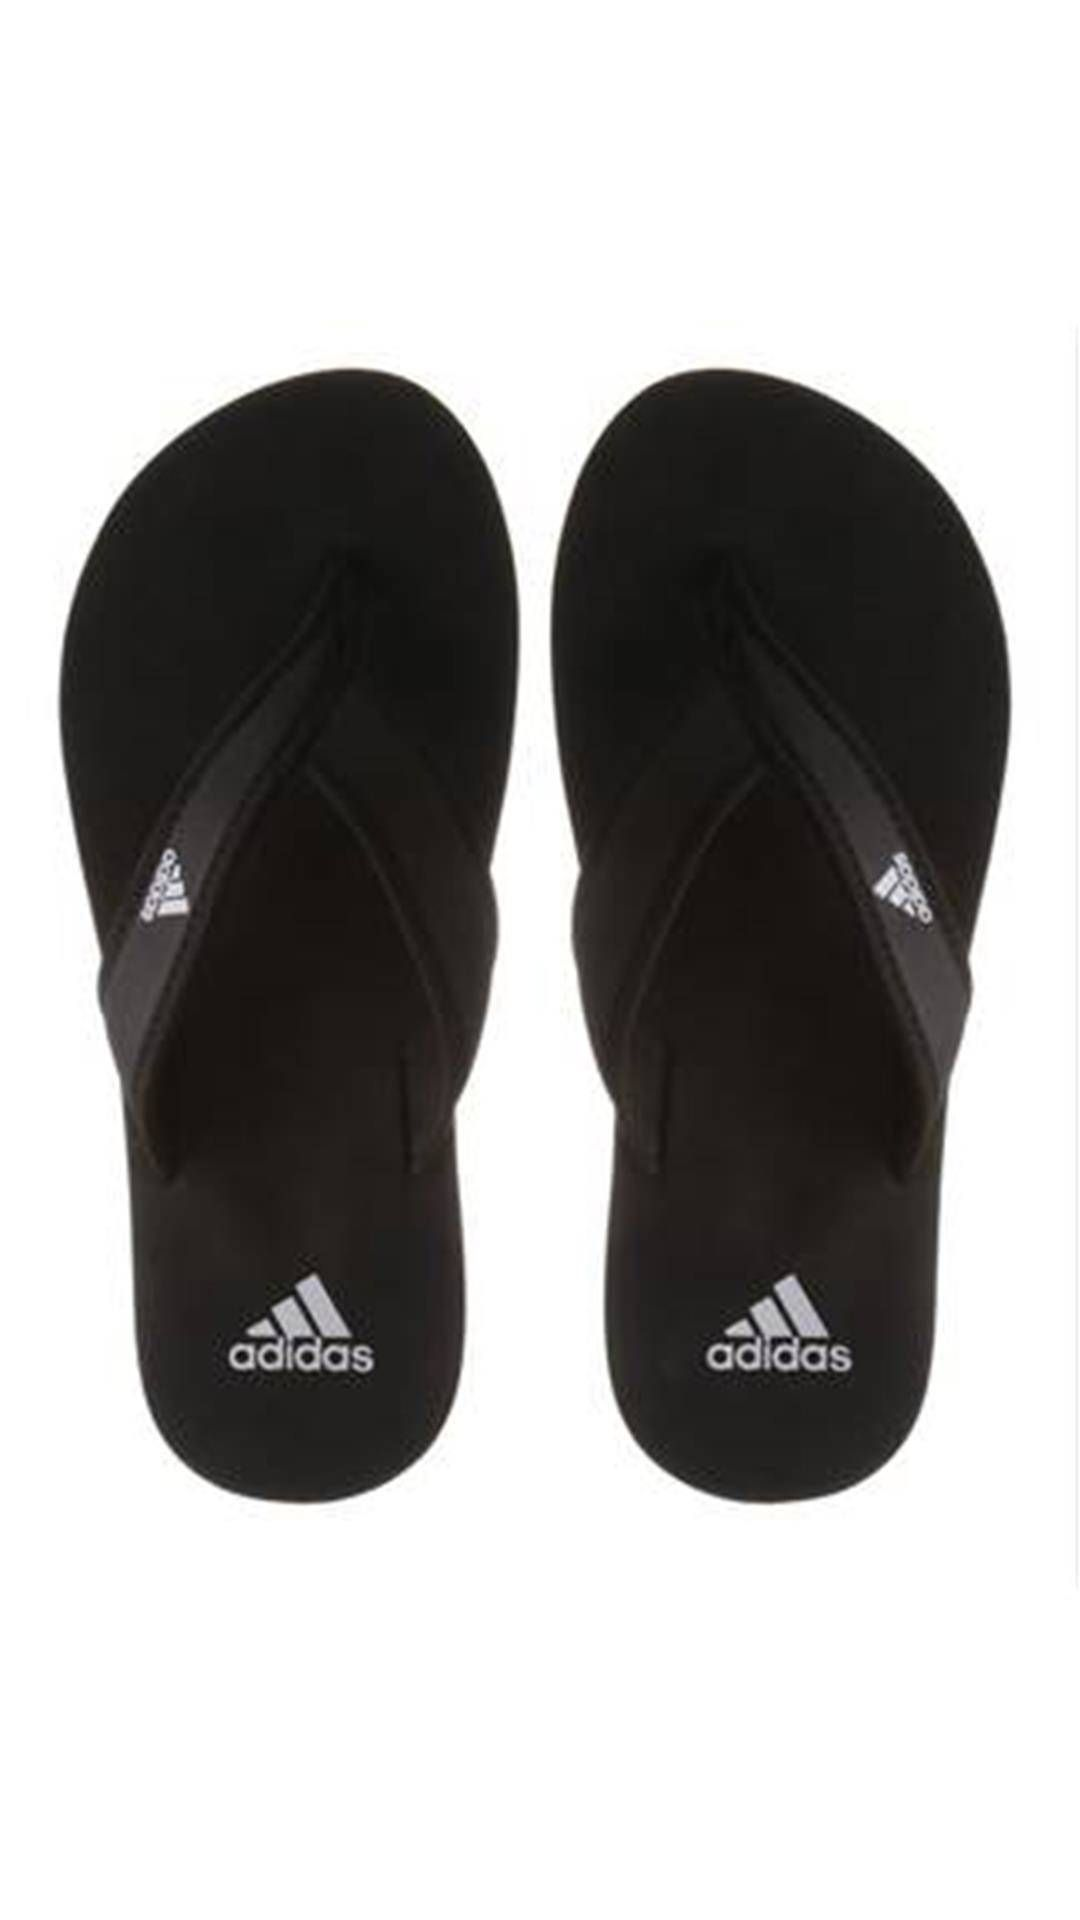 Paytmmall.com - Buy Adidas Men s Adi Rio Black Slippers   Flip Flops online  at 851f37319